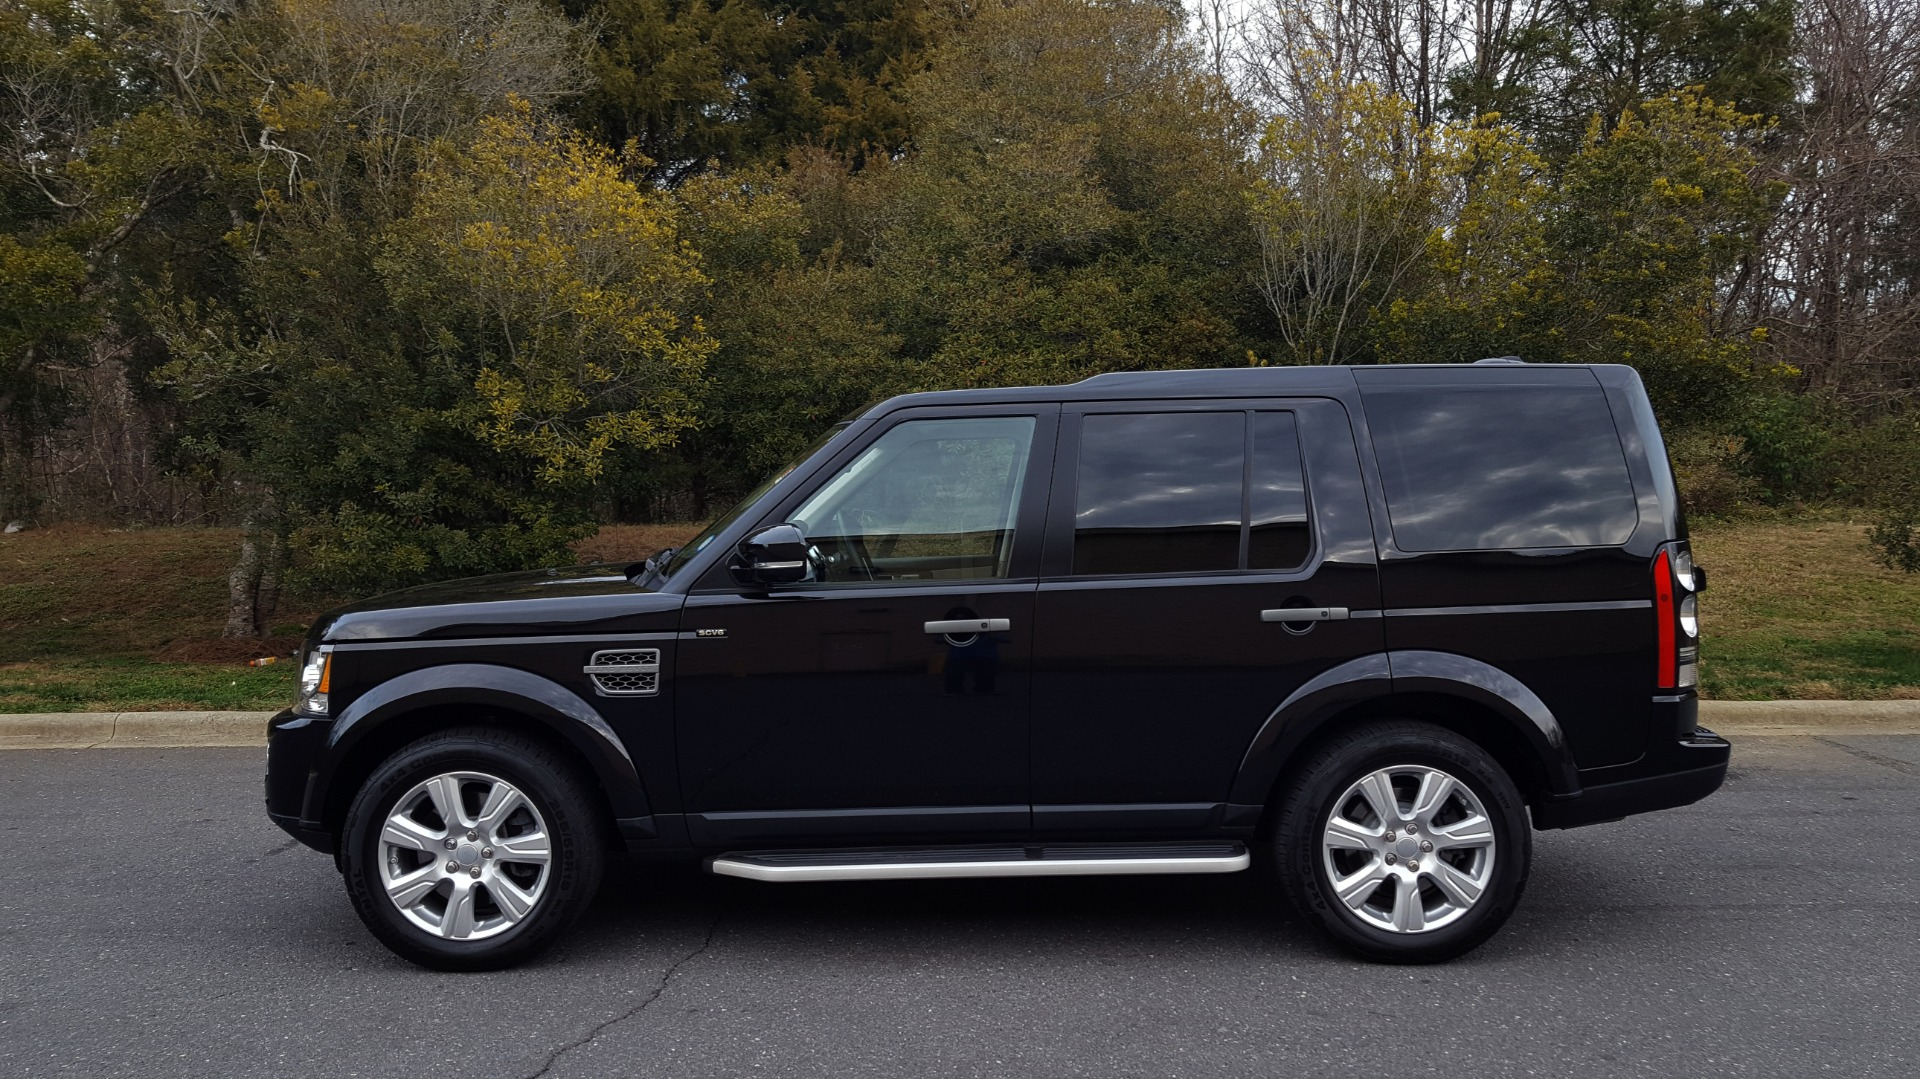 Used 2016 Land Rover LR4 HSE SC V6 / 4WD / NAV / SUNROOF / COMFORT / MERIDIAN / REARVIEW for sale Sold at Formula Imports in Charlotte NC 28227 2